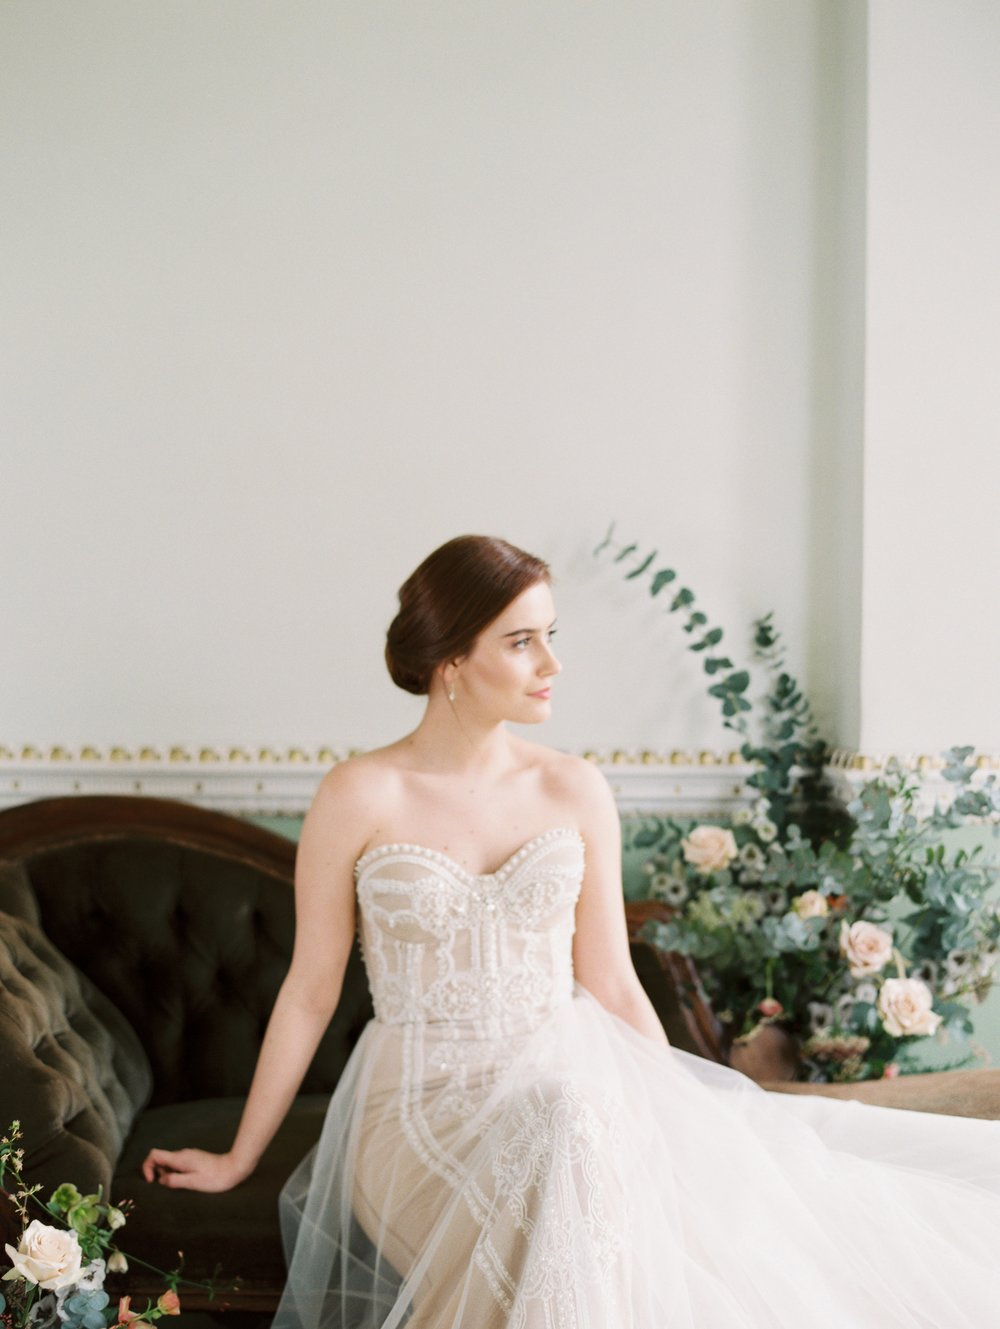 The Timeless Stylist-Antique Chaise Wedding Props